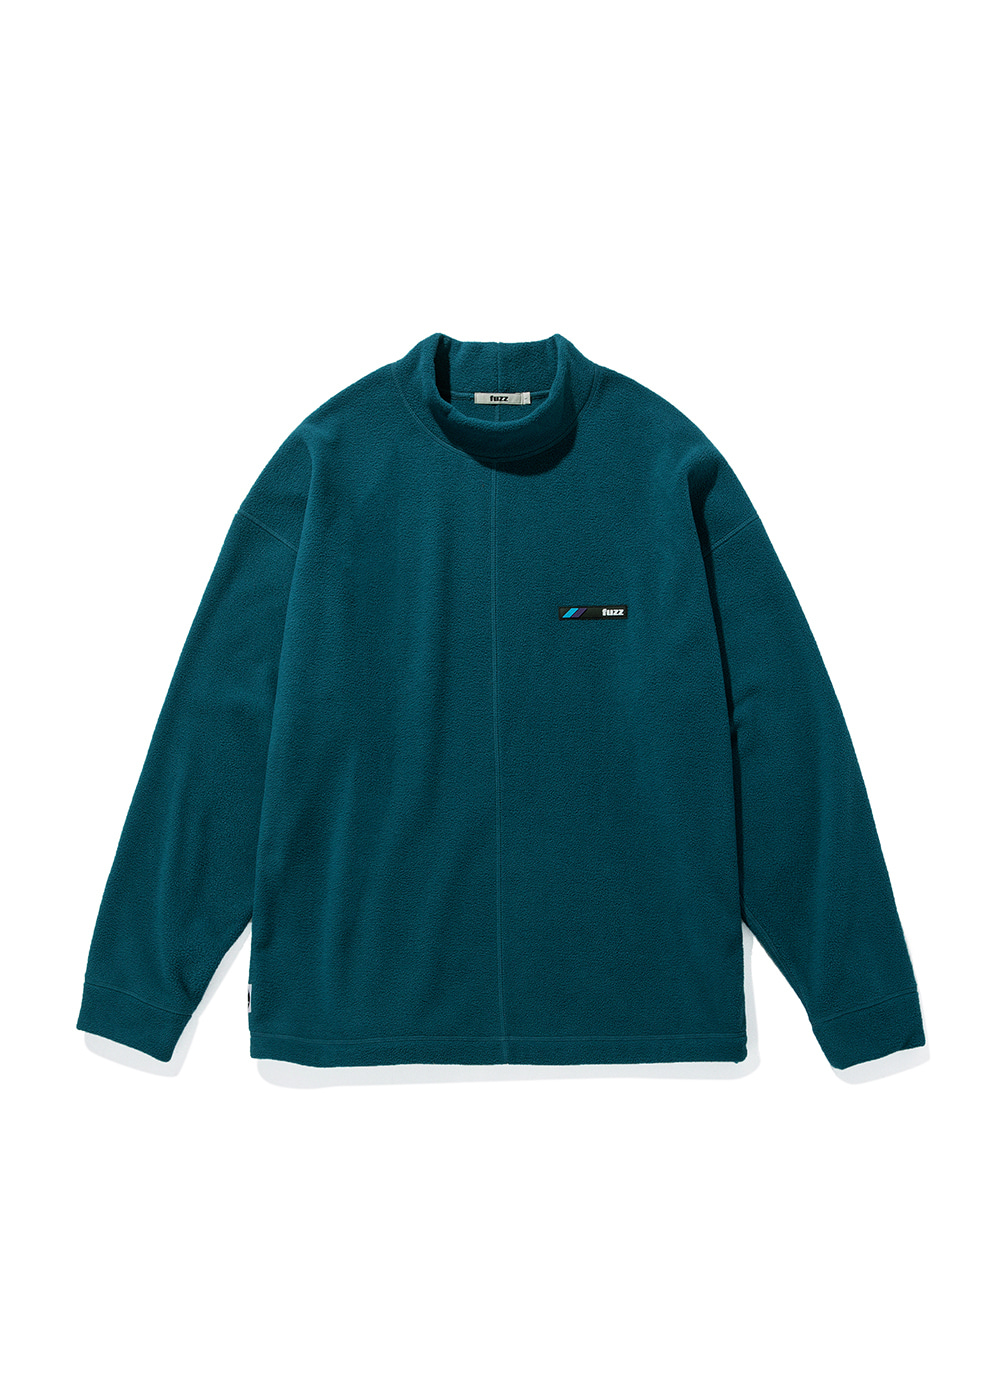 FUZZ FLEECE MOCKNECK L/S TEE dark teal